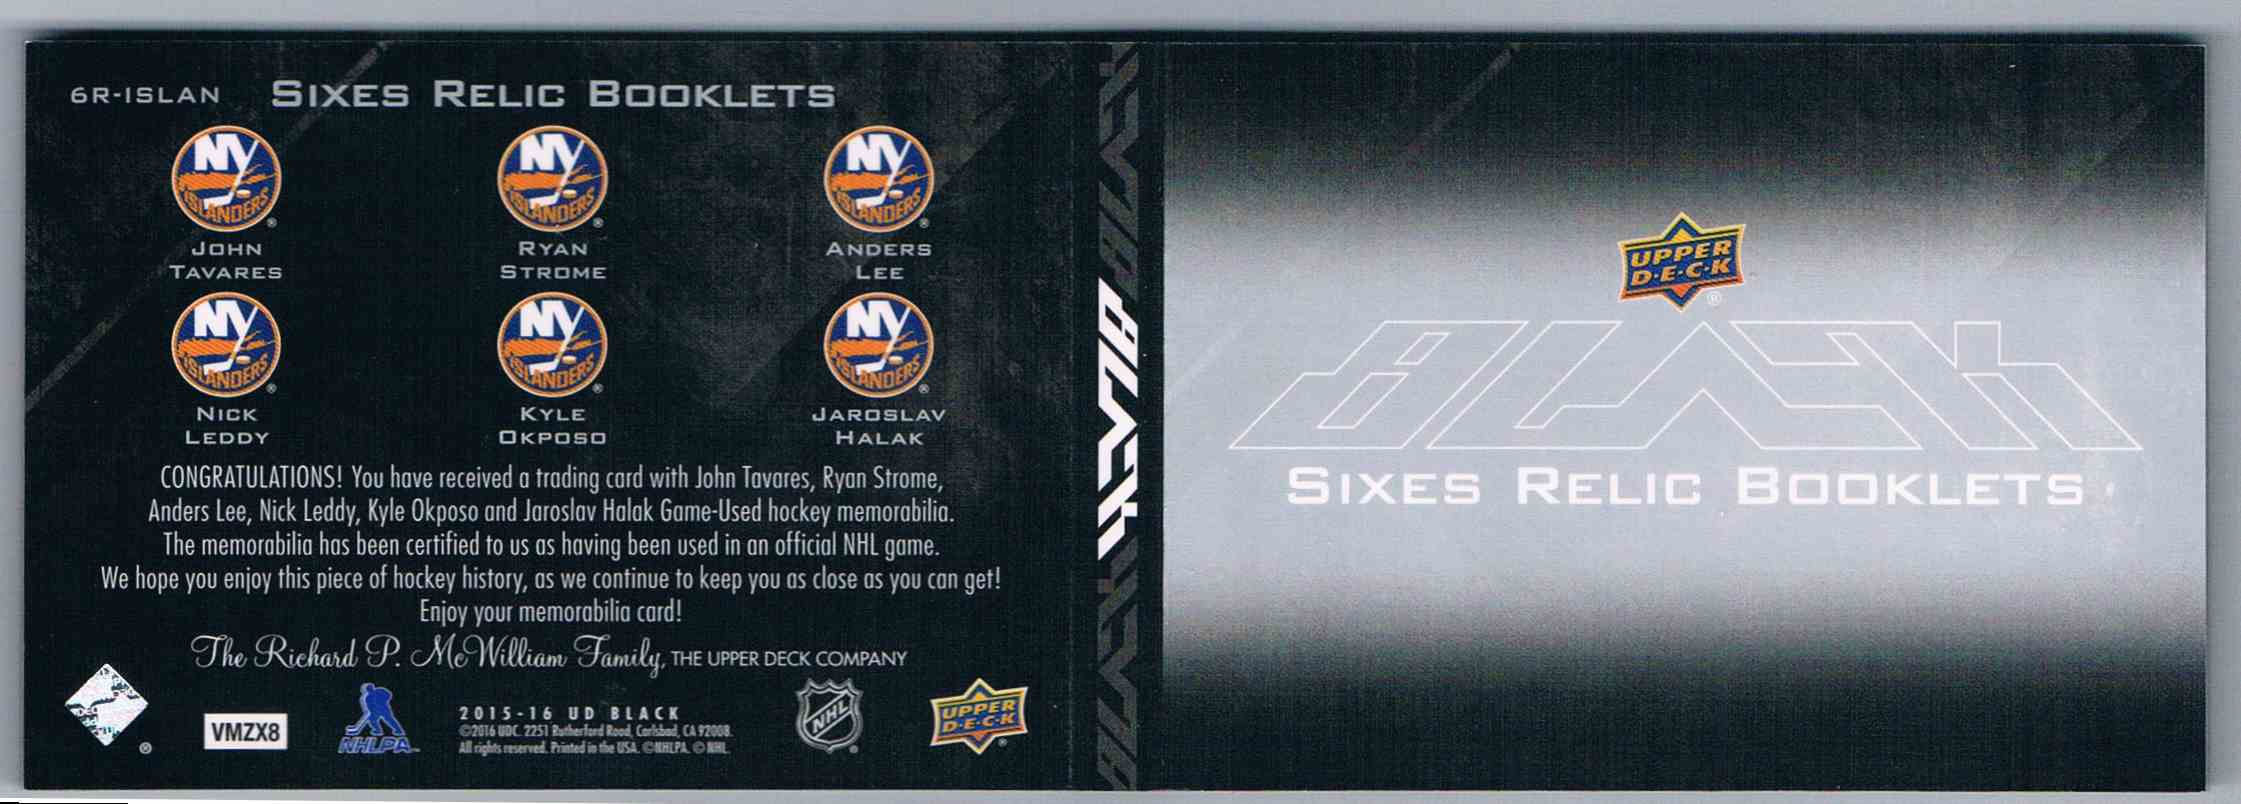 2015-16 Upper Deck UD Black Sixes Relic Booklets John Tavares Ryan Strome Anders Lee Nick Leddy Kyle Okposo Jaroslav Halak #6R-ISLAN card back image